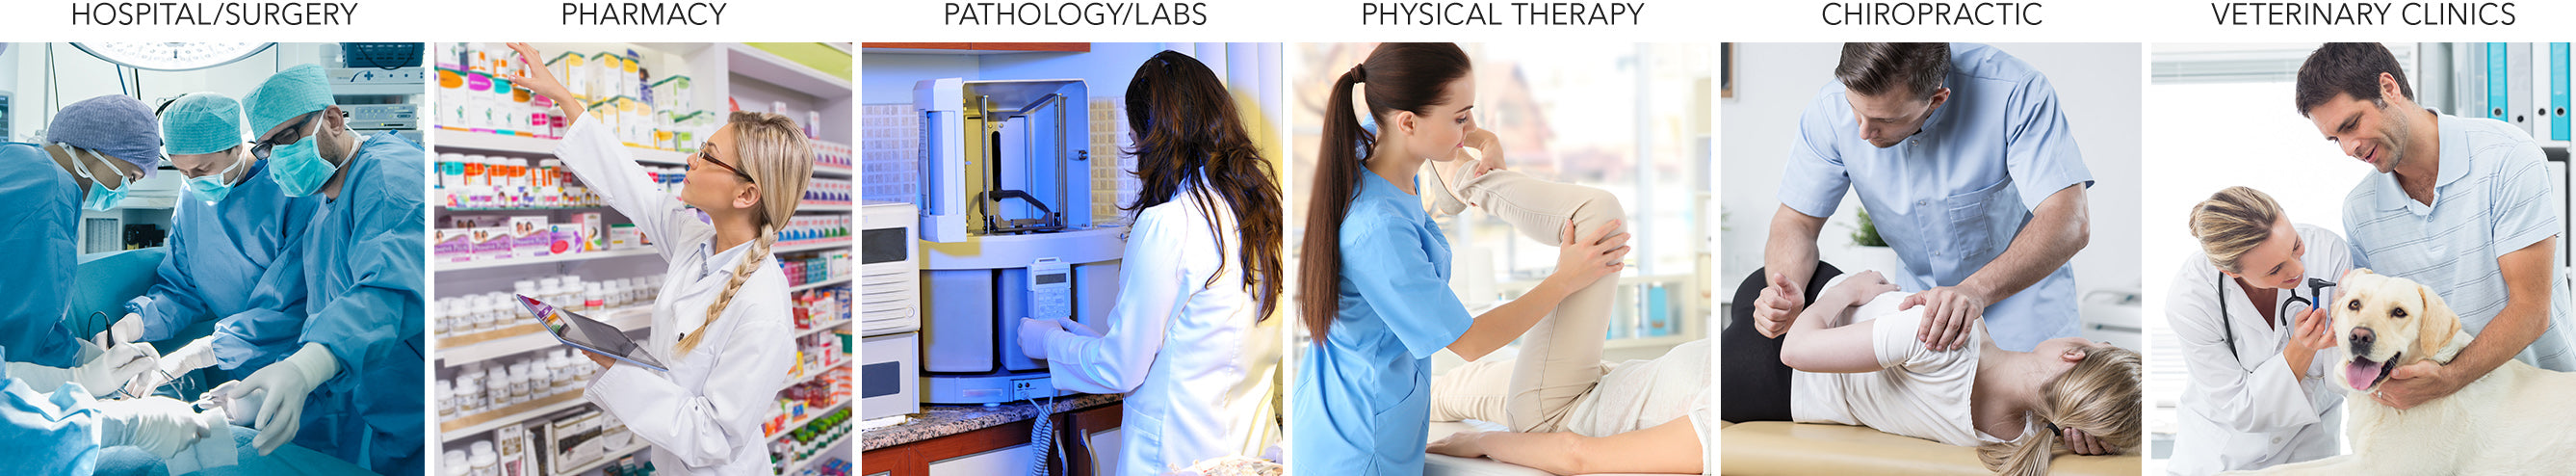 Hospital, Pharmacy, Pathology, Physical Therapy, Chiropractic, Veterinary Clinics